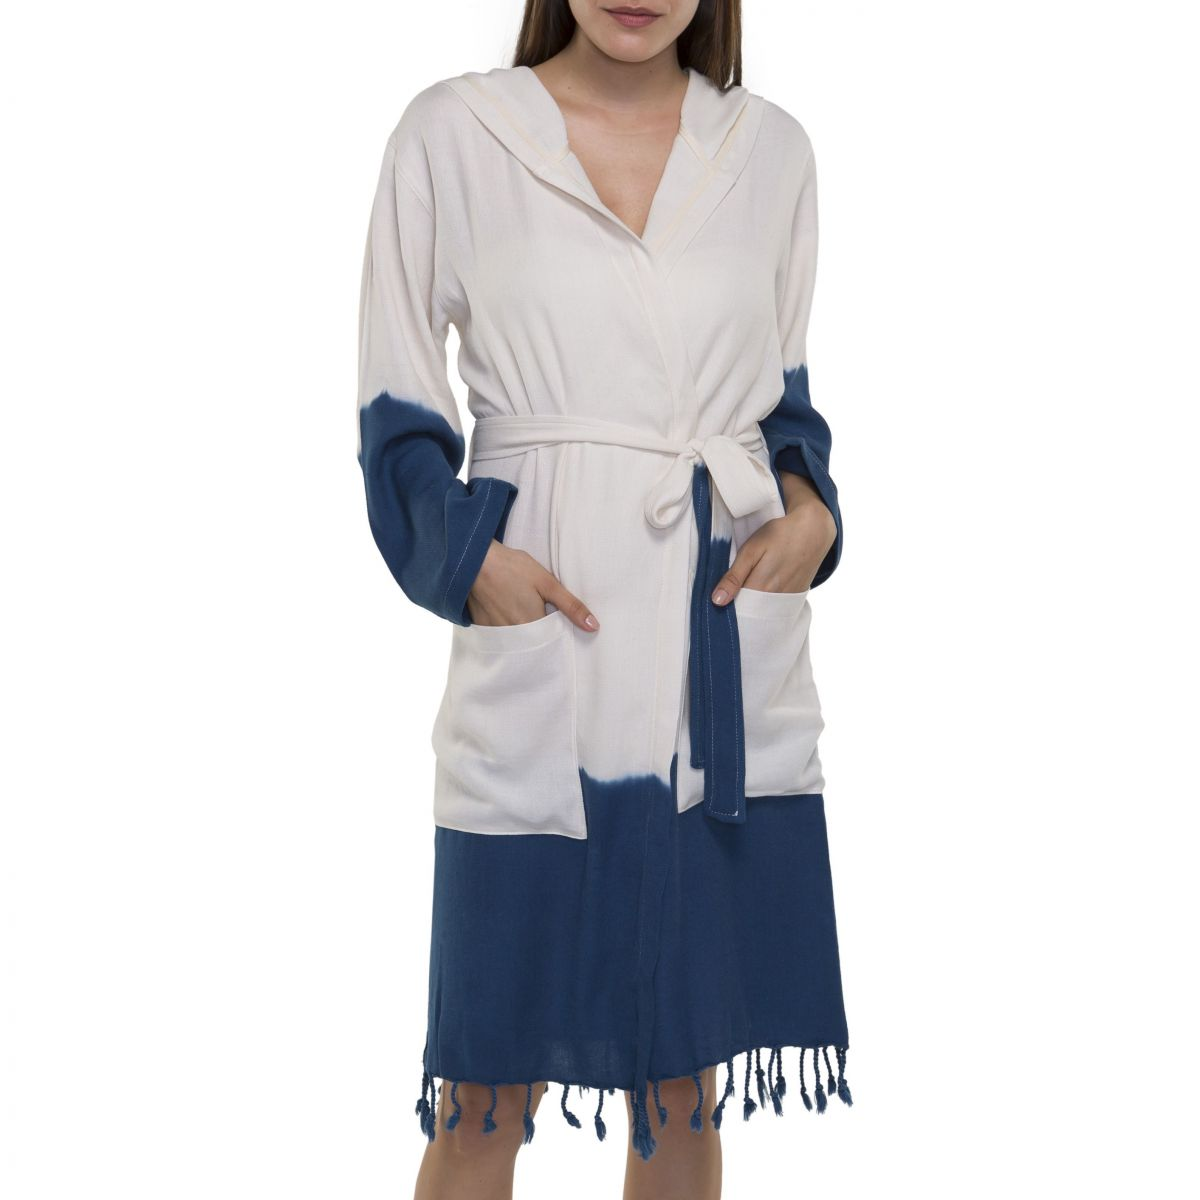 Bathrobe Tie Dye with hood - Navy